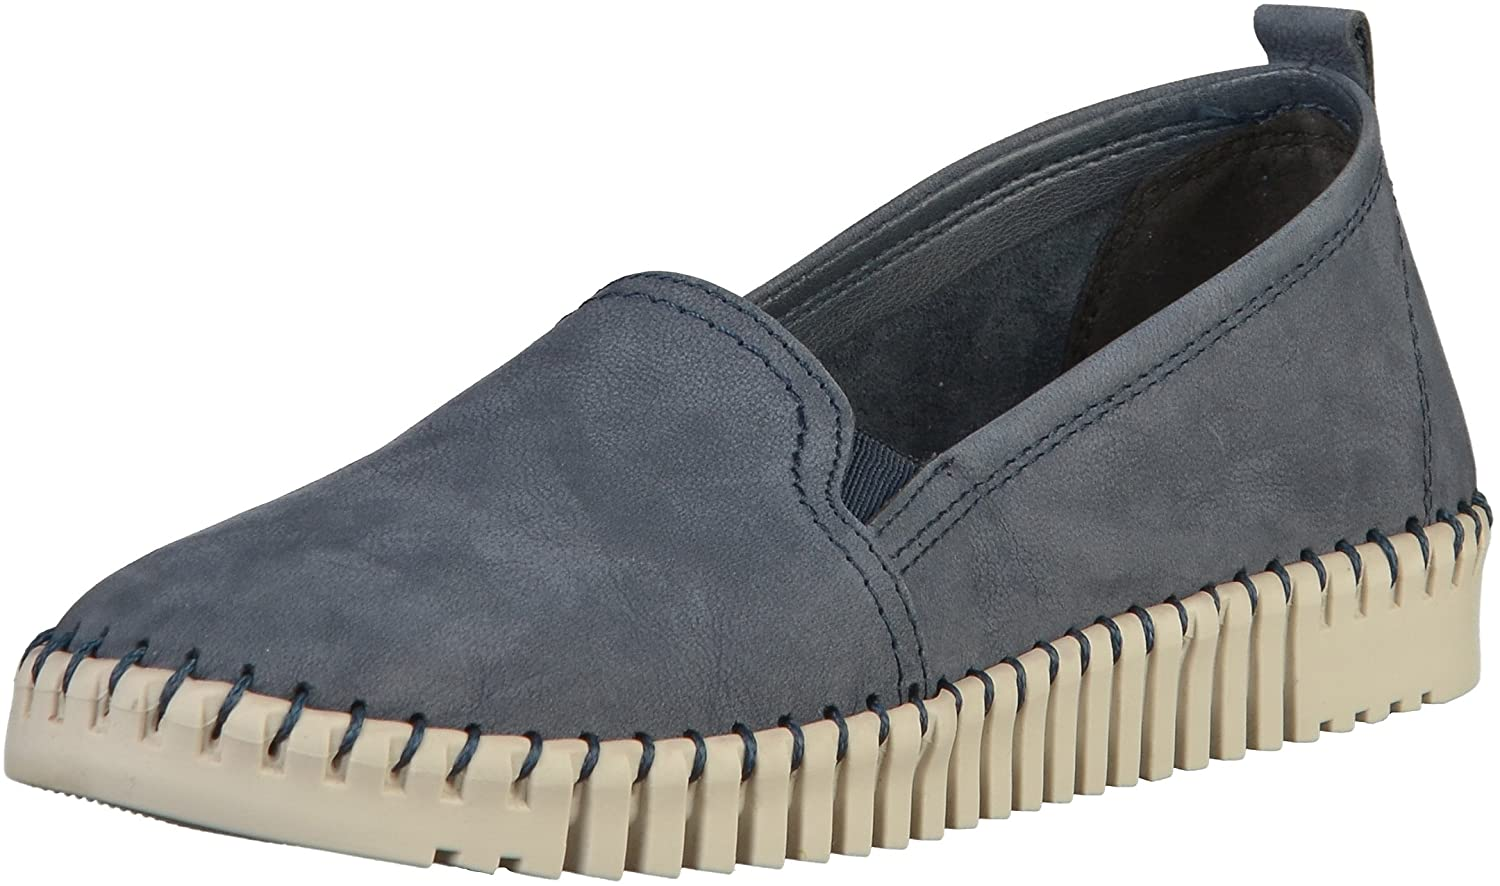 Tamaris 1-24625-20 Damen Slipper Blau(navy)